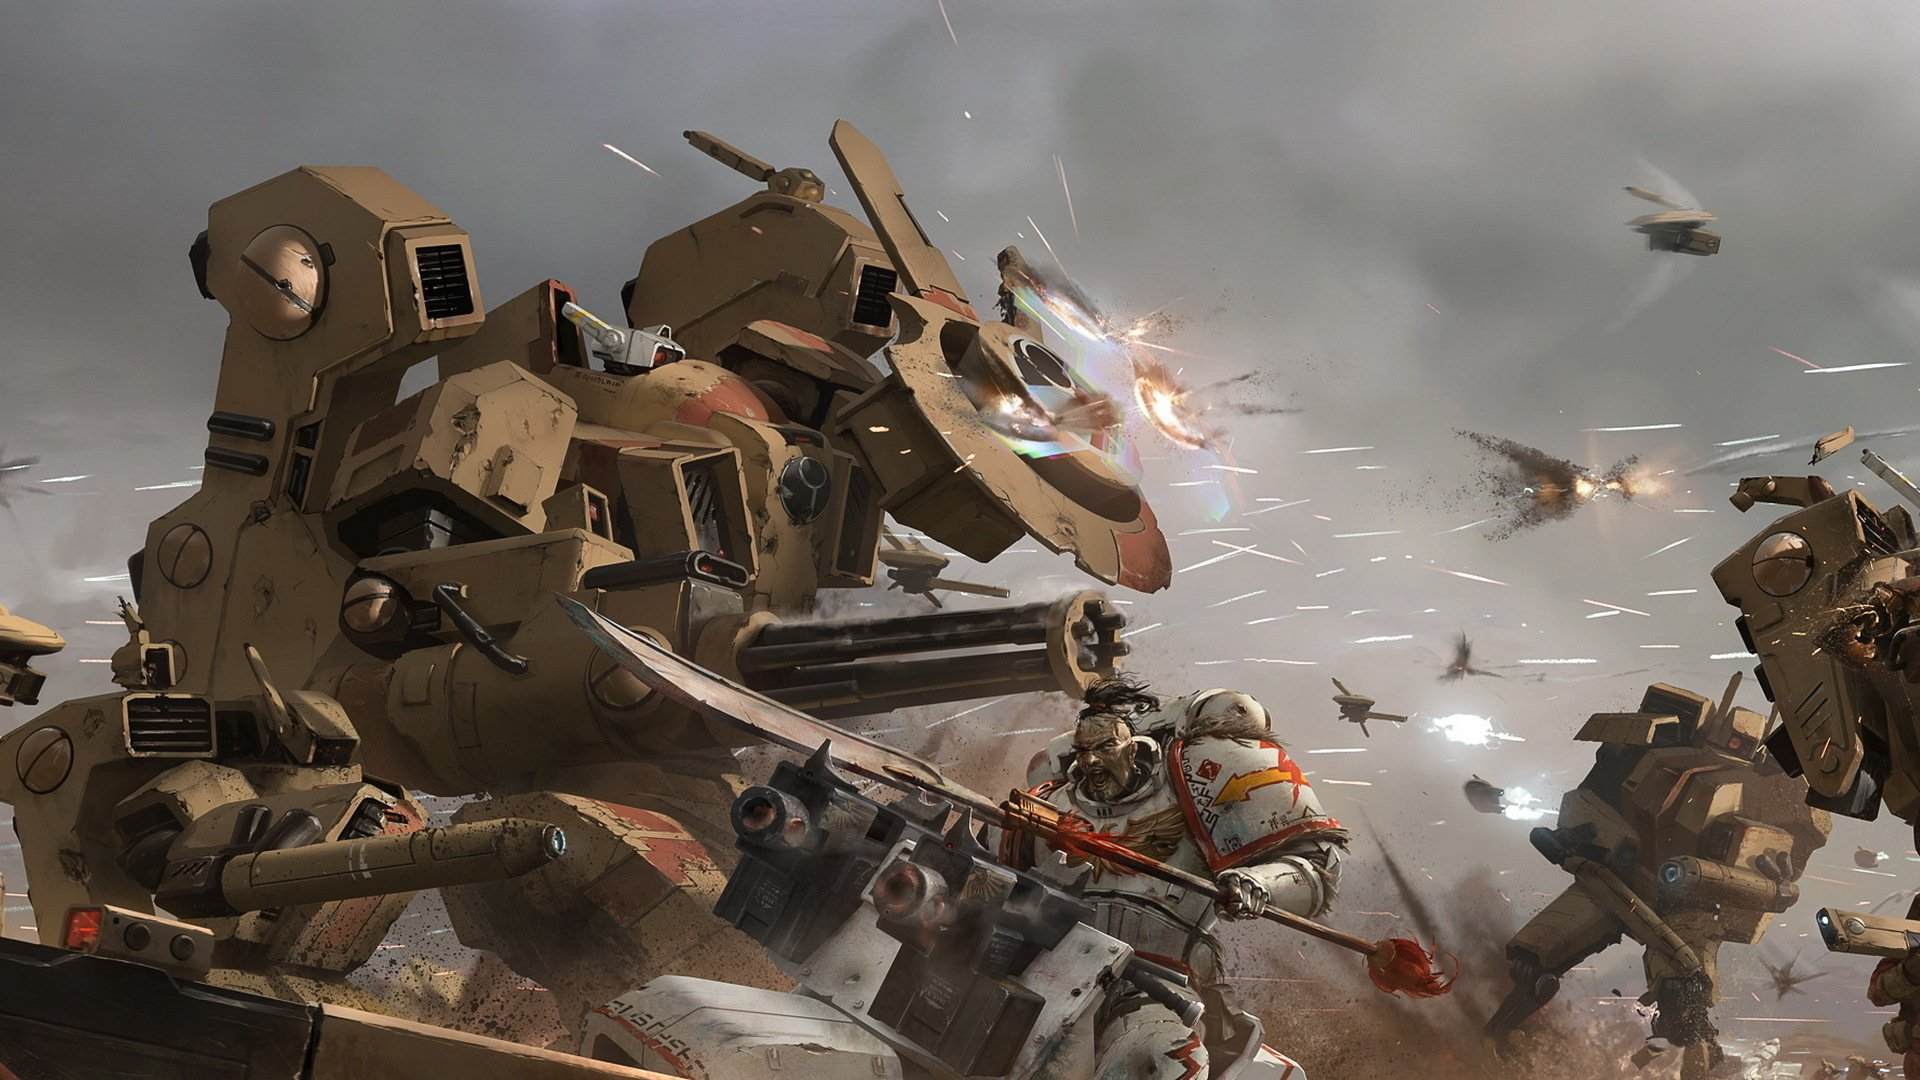 44 Space Marine Hd Wallpapers Background Images Wallpaper Abyss